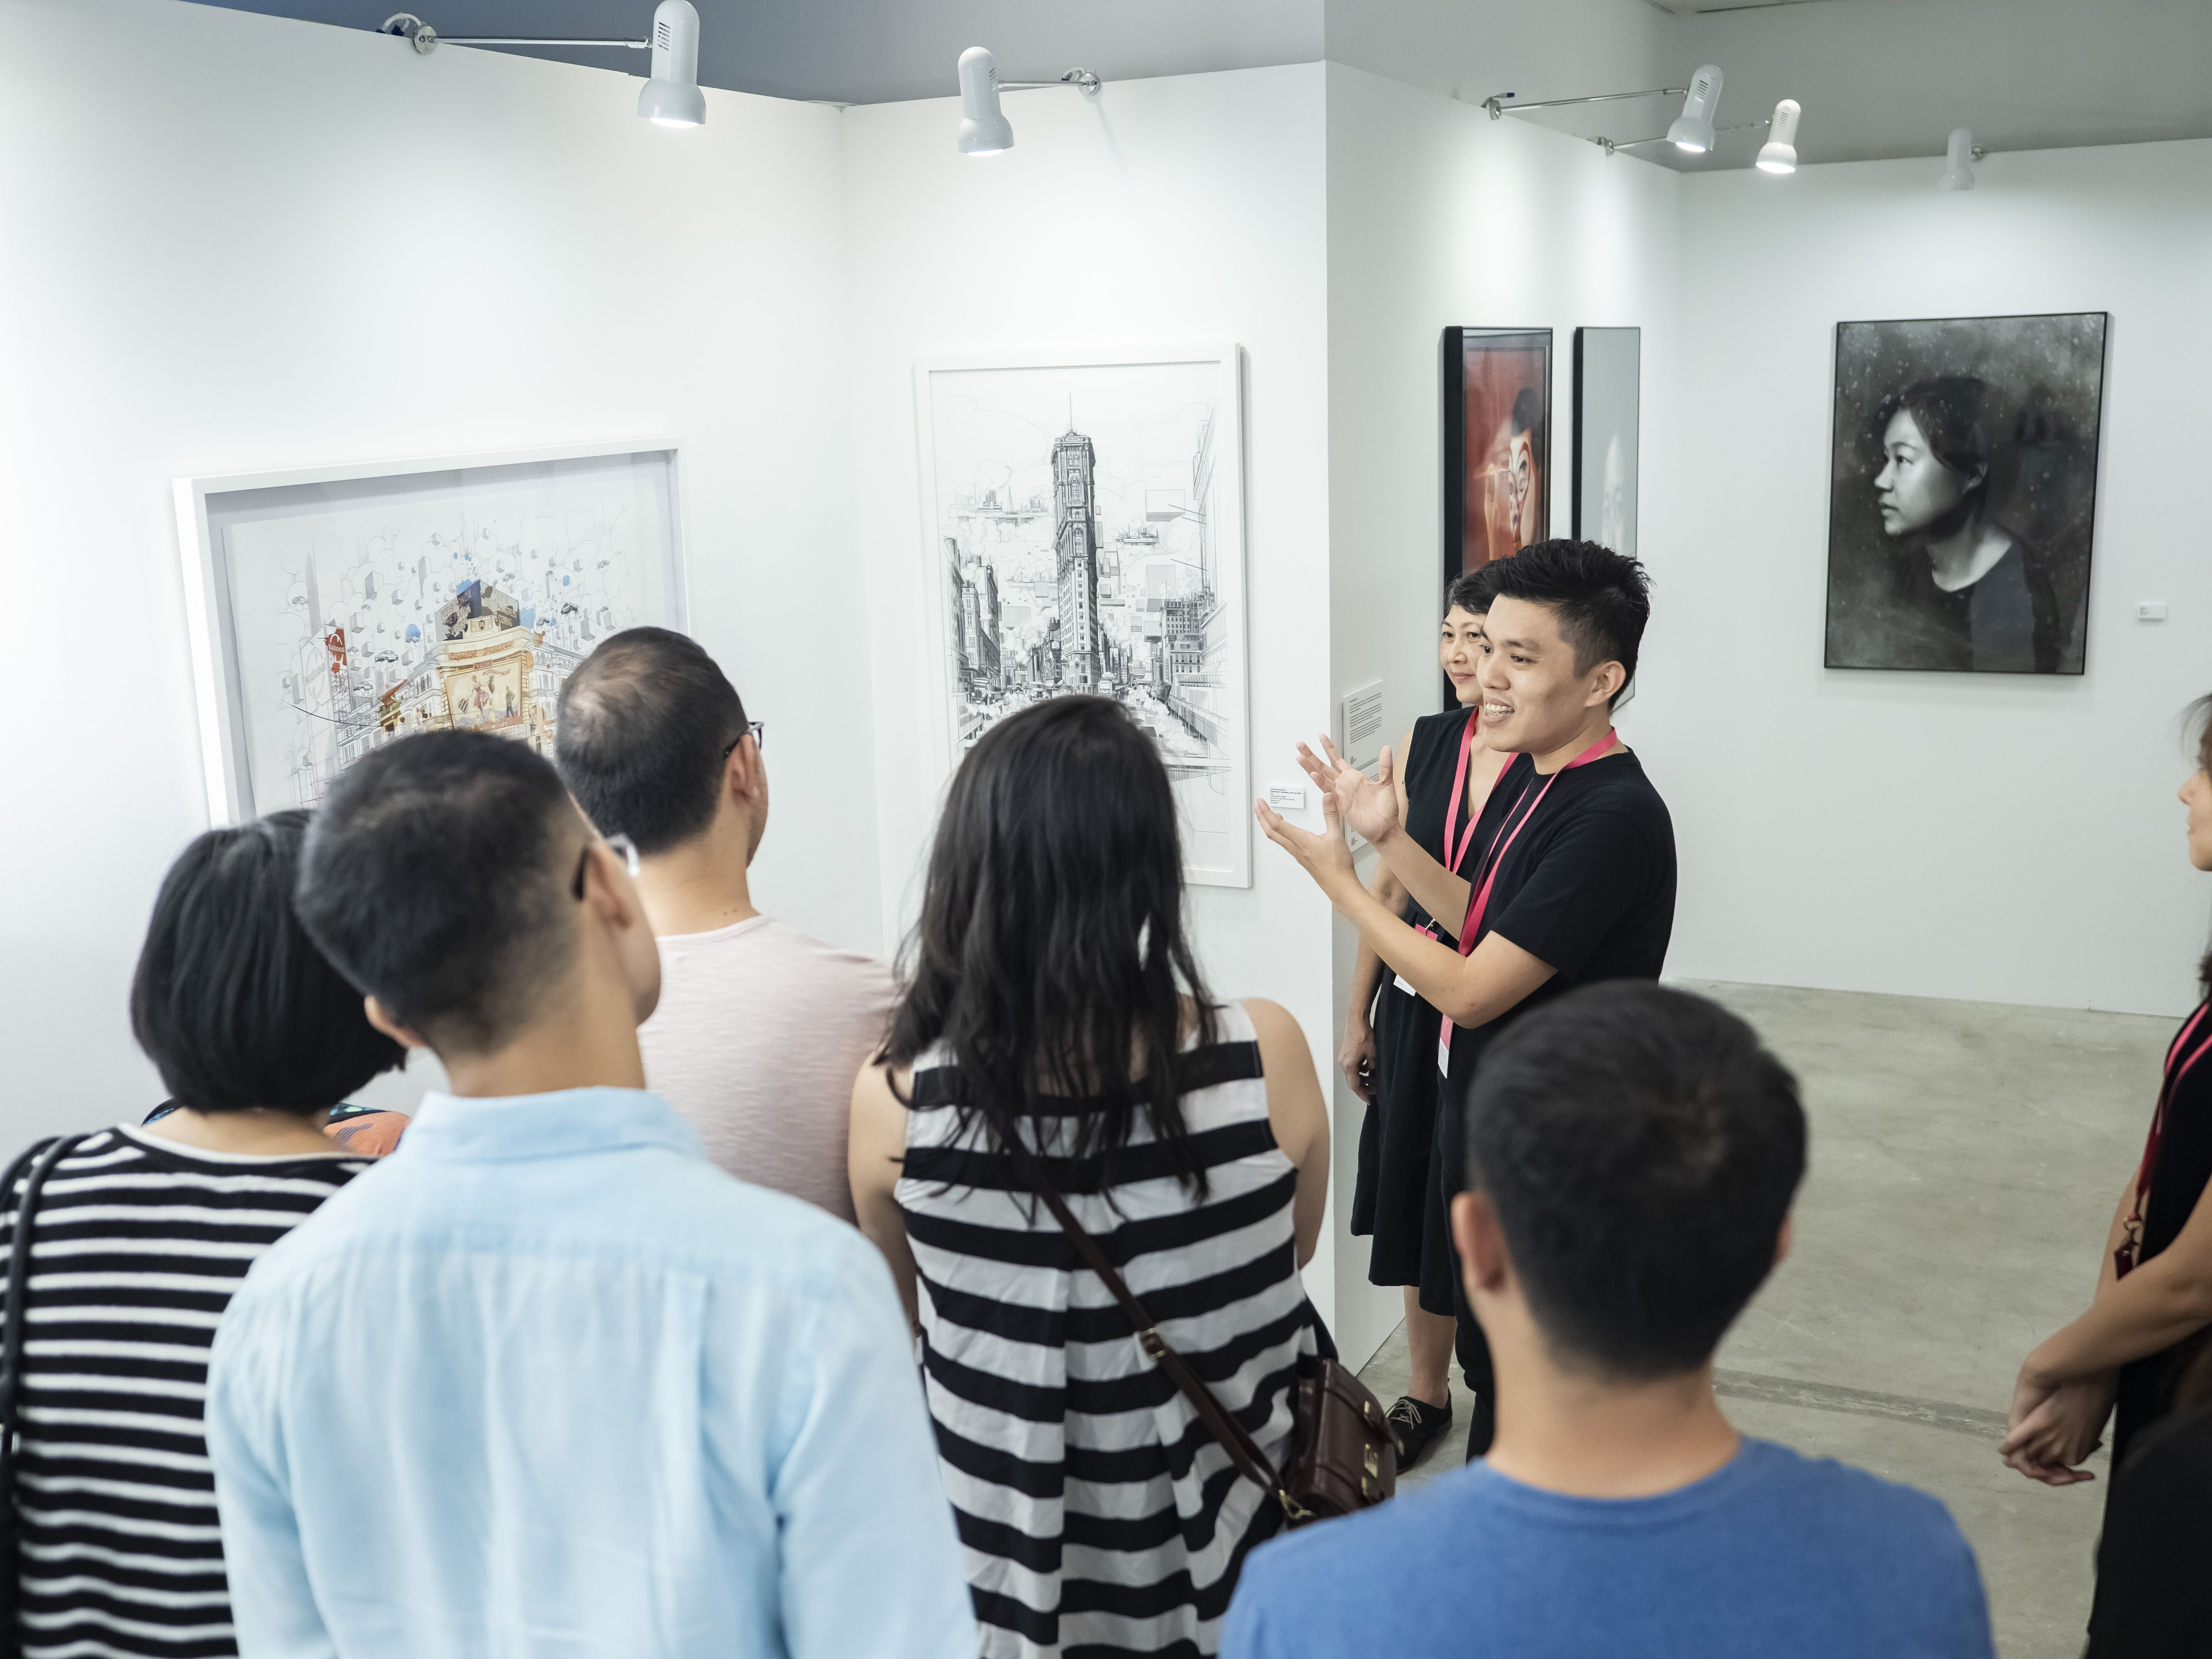 Affordable Art Fair Singapore 2018 Affordableartfair Affordableartfairsingapore Aafsingapore Brin Singapore Art Crafts For 2 Year Olds Affordable Art Fair